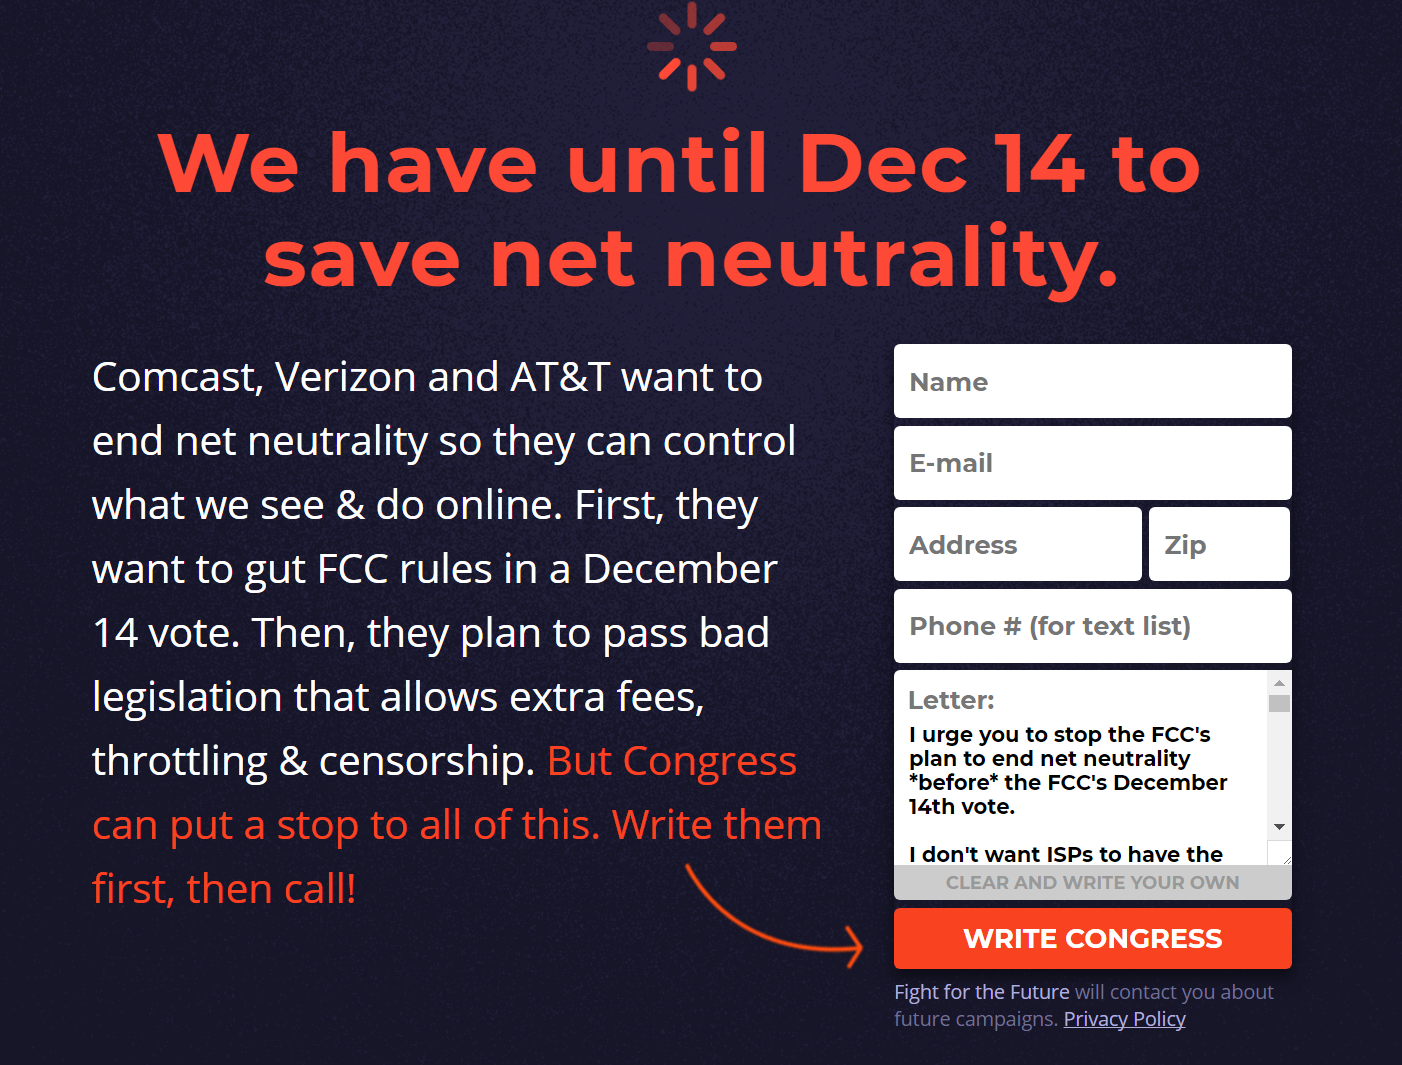 You can visit www.battleforthenet.com any time before Dec. 14 to petition Congress to keep net neutrality protection laws in place.